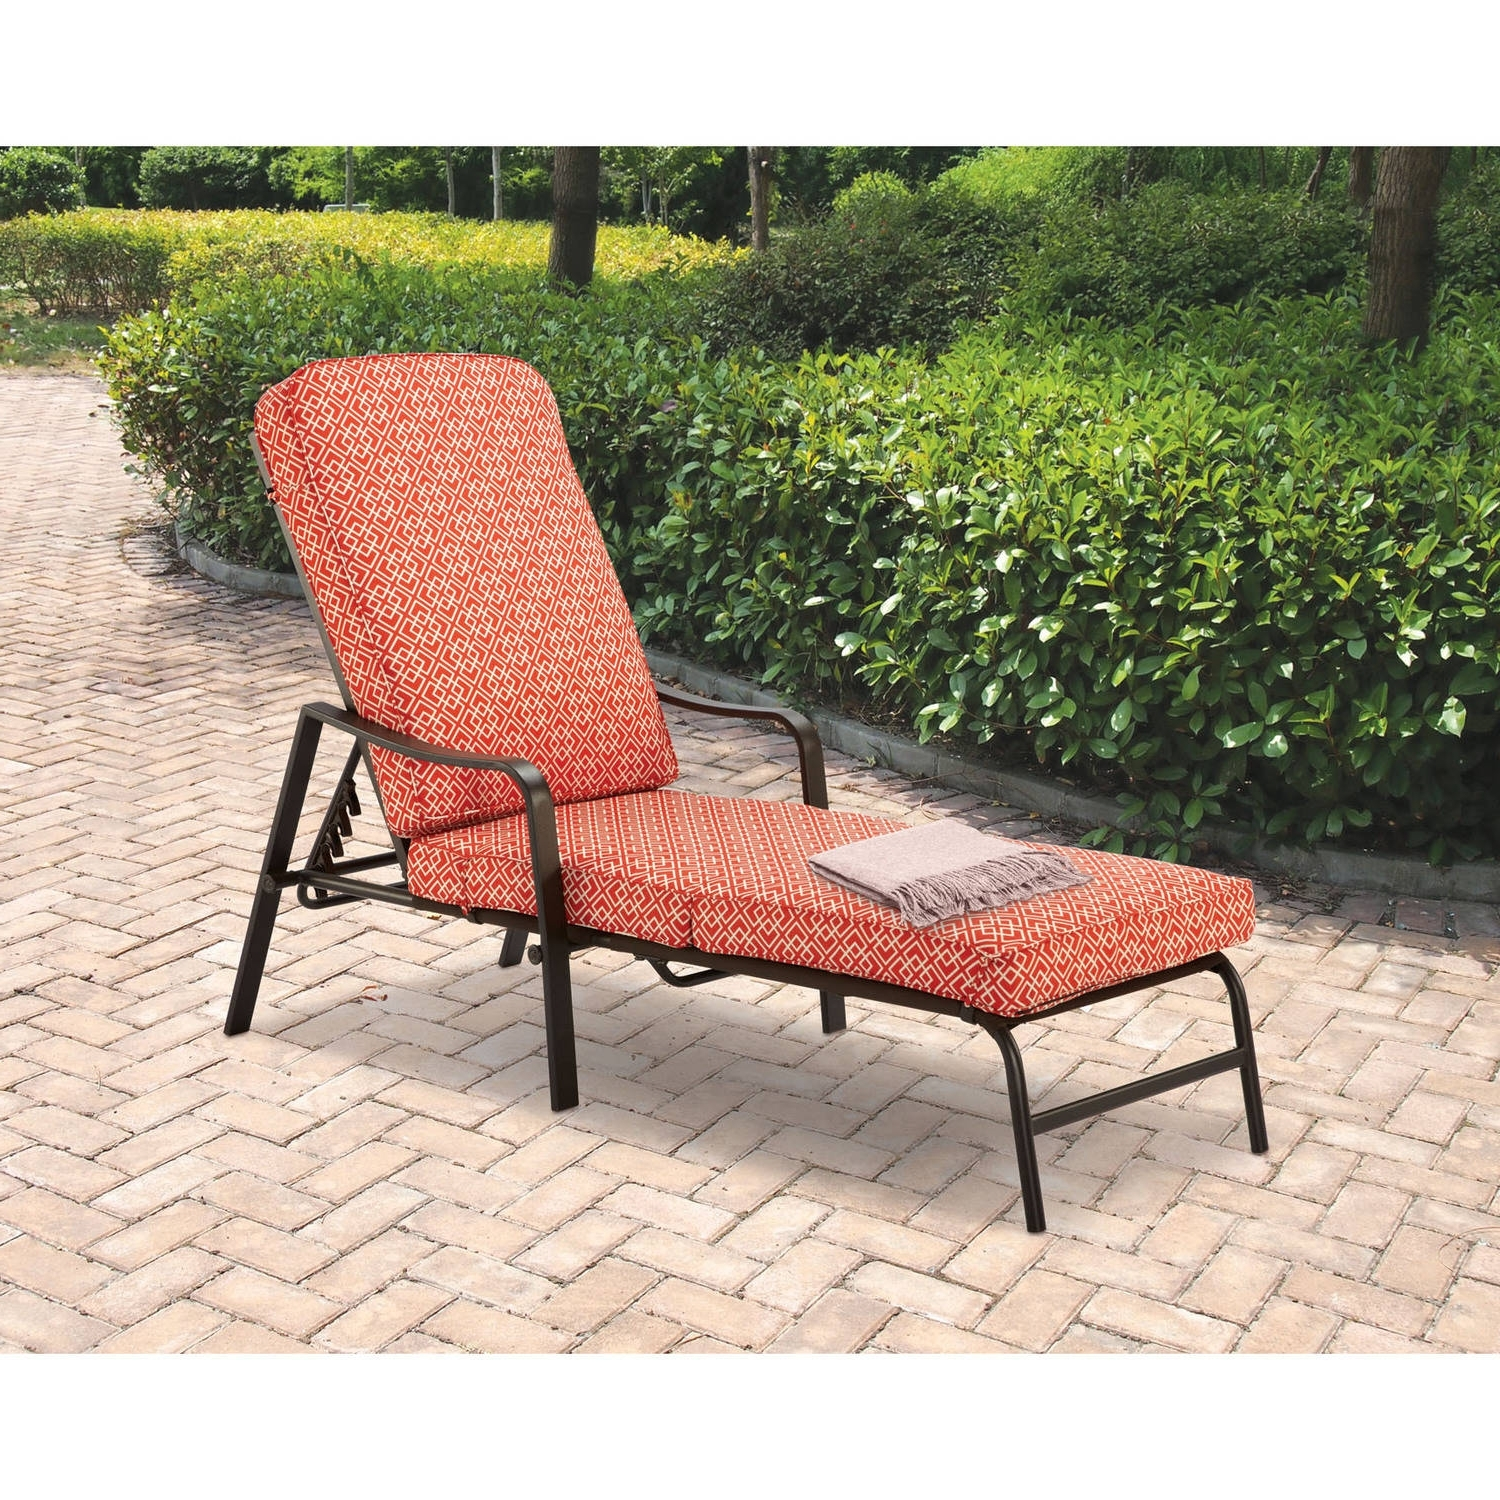 Outdoor Chaise Lounges Within Recent Mainstays Outdoor Chaise Lounge, Orange Geo Pattern – Walmart (View 10 of 15)